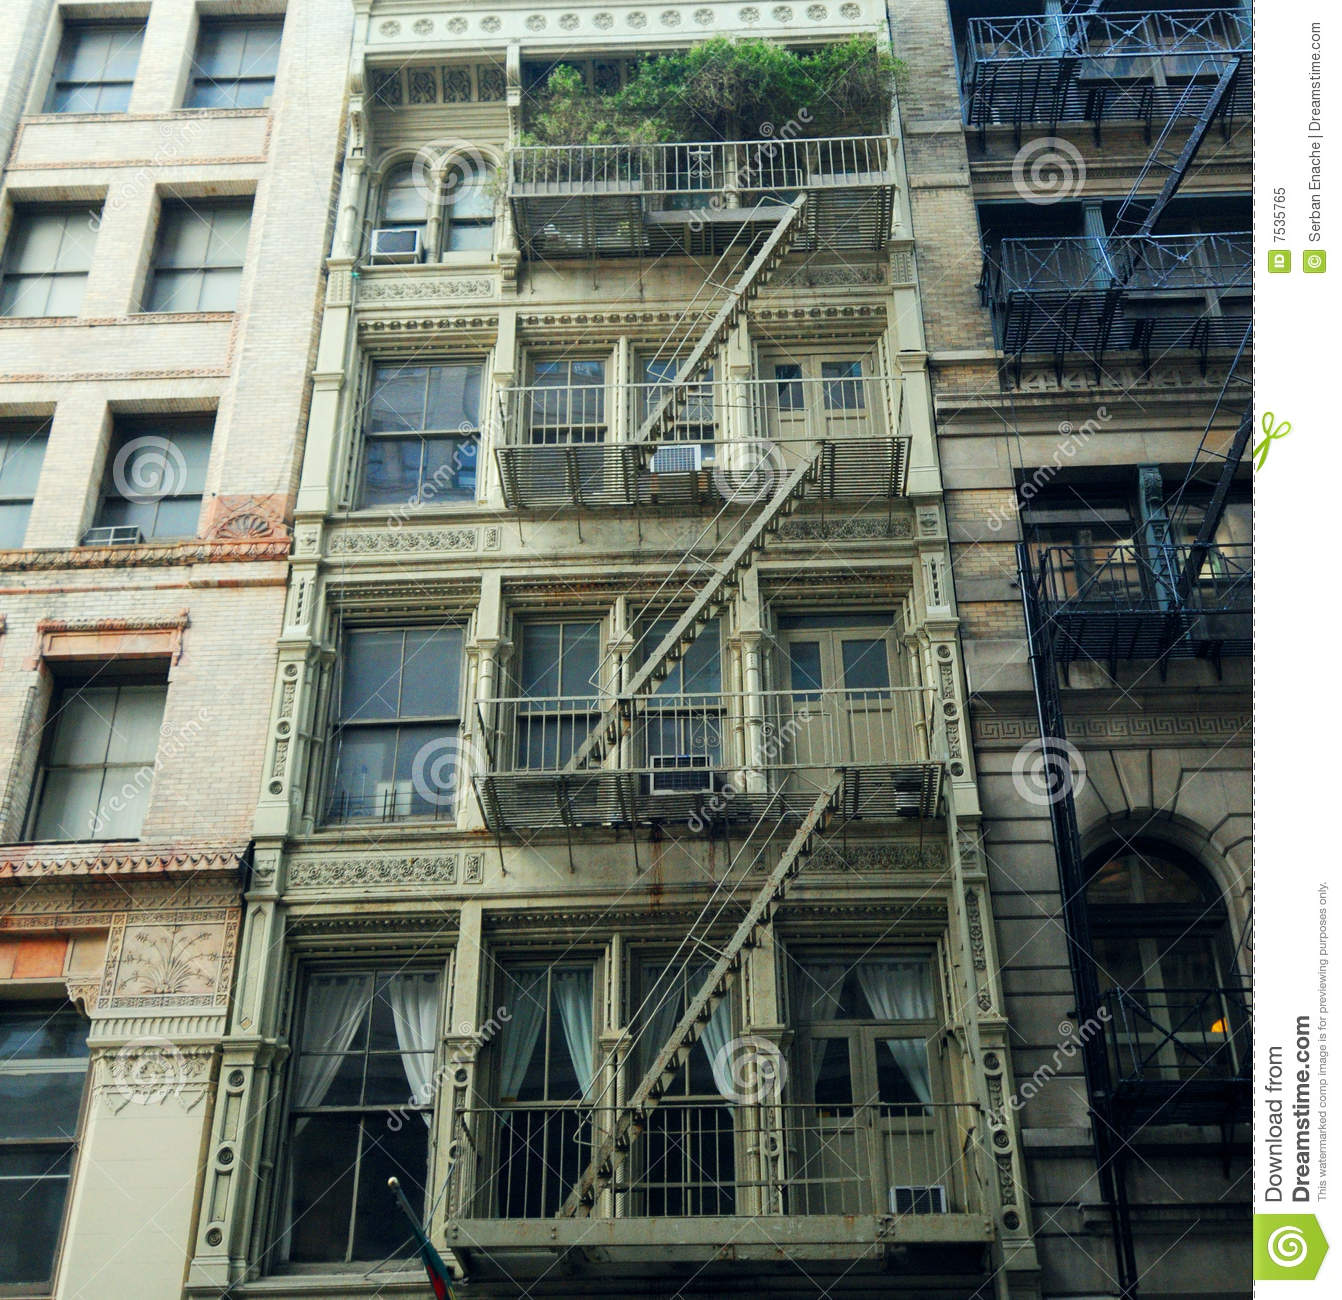 Nyc Apartment Complexes: New York Apartment Building Royalty Free Stock Photo